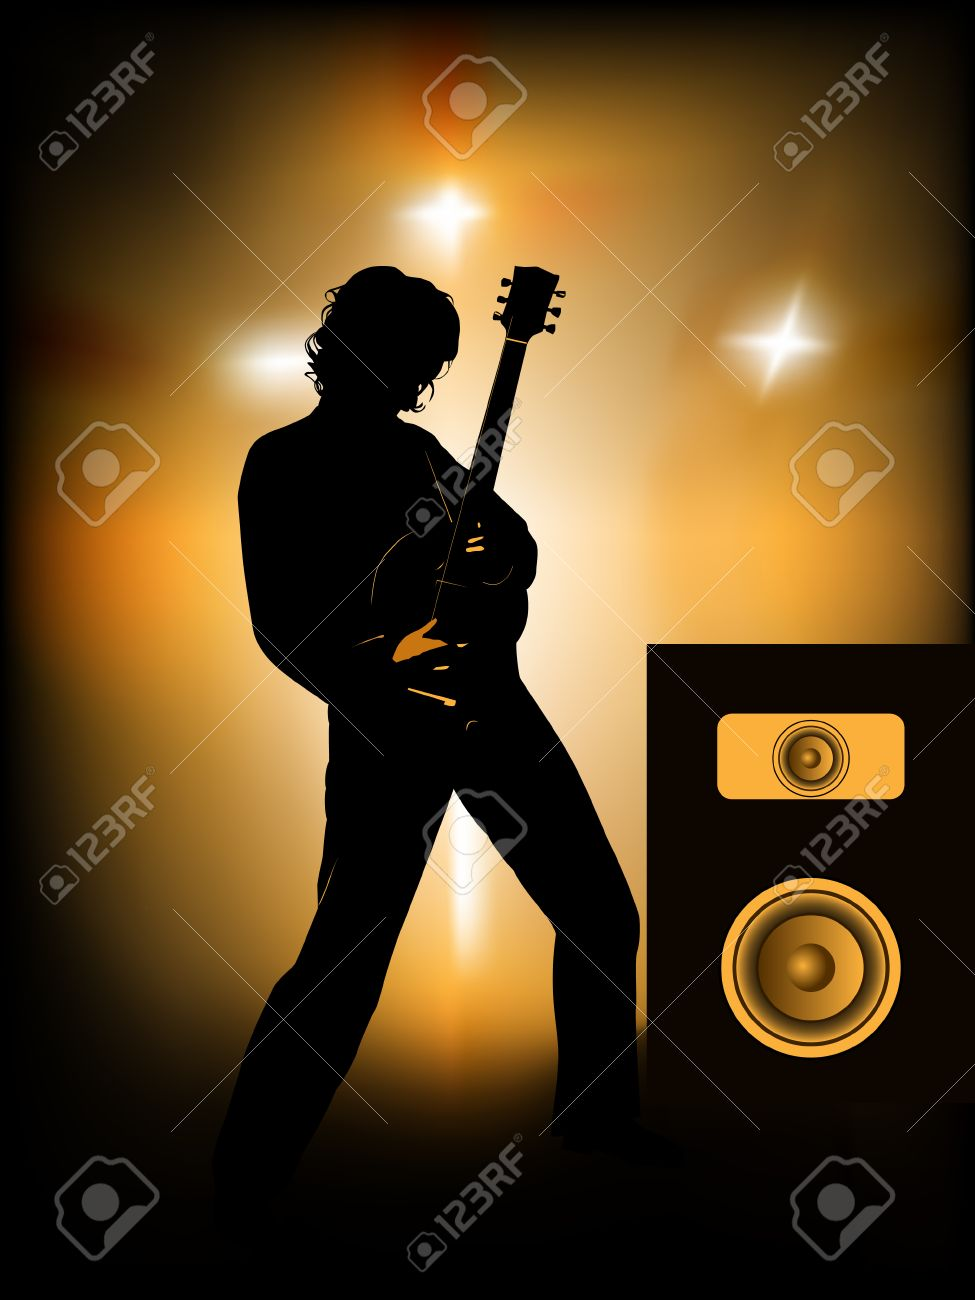 silhouette of guitar player on stage Stock Vector - 6289058